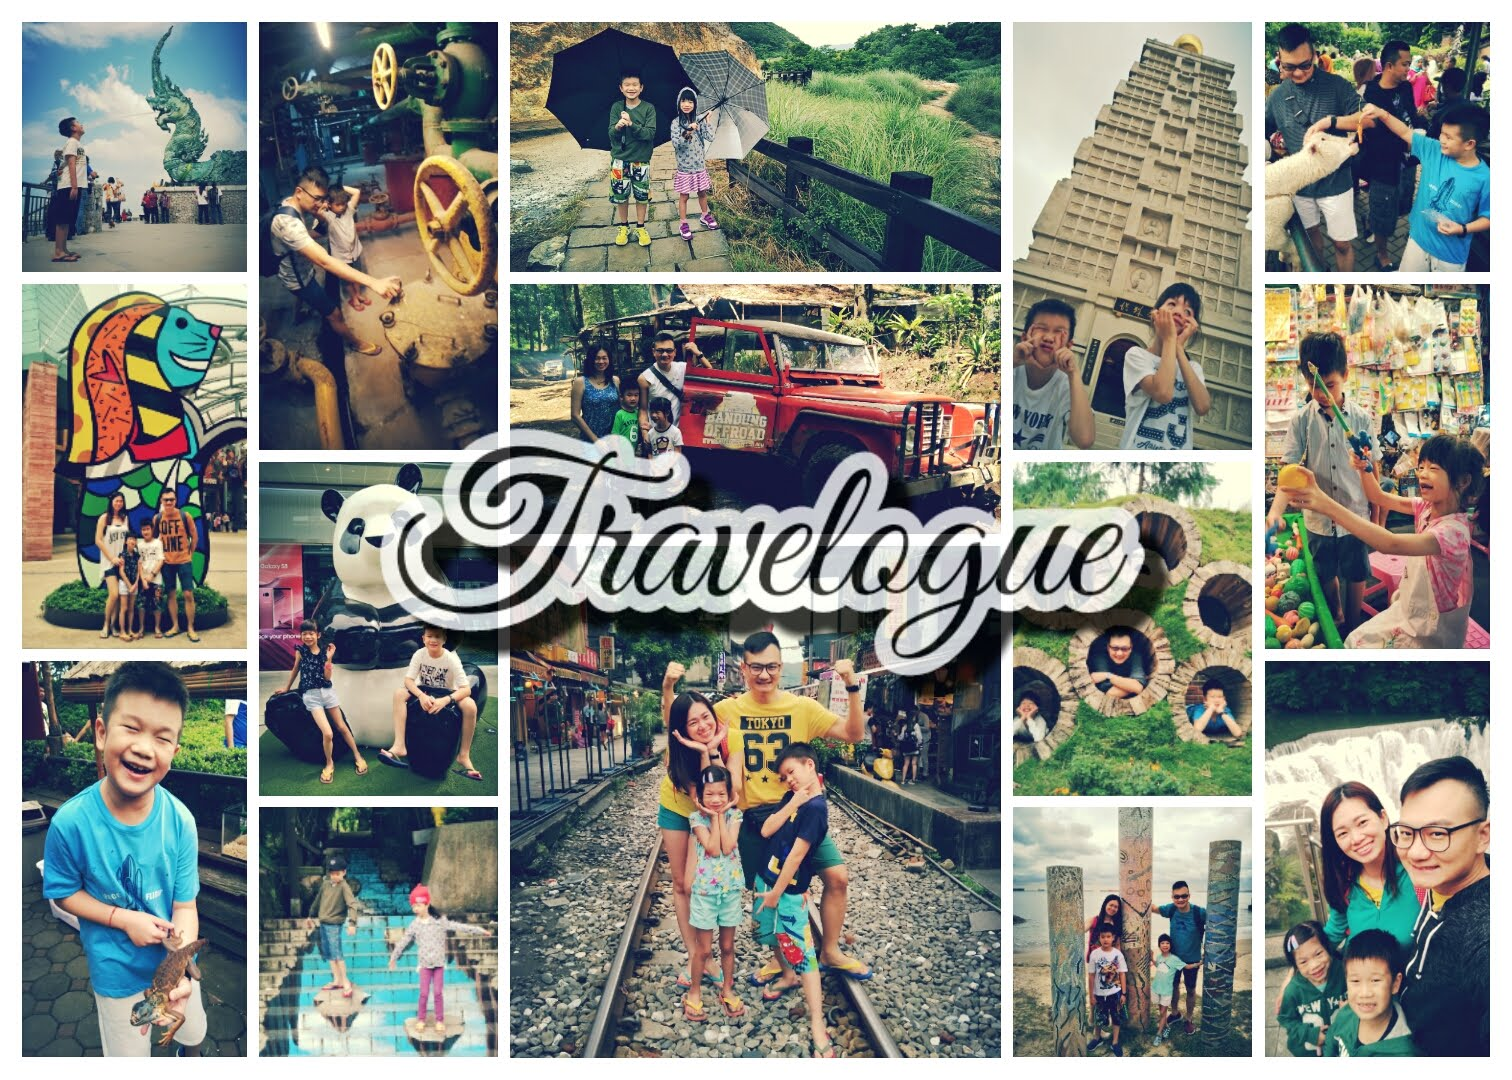 Our Travelogue